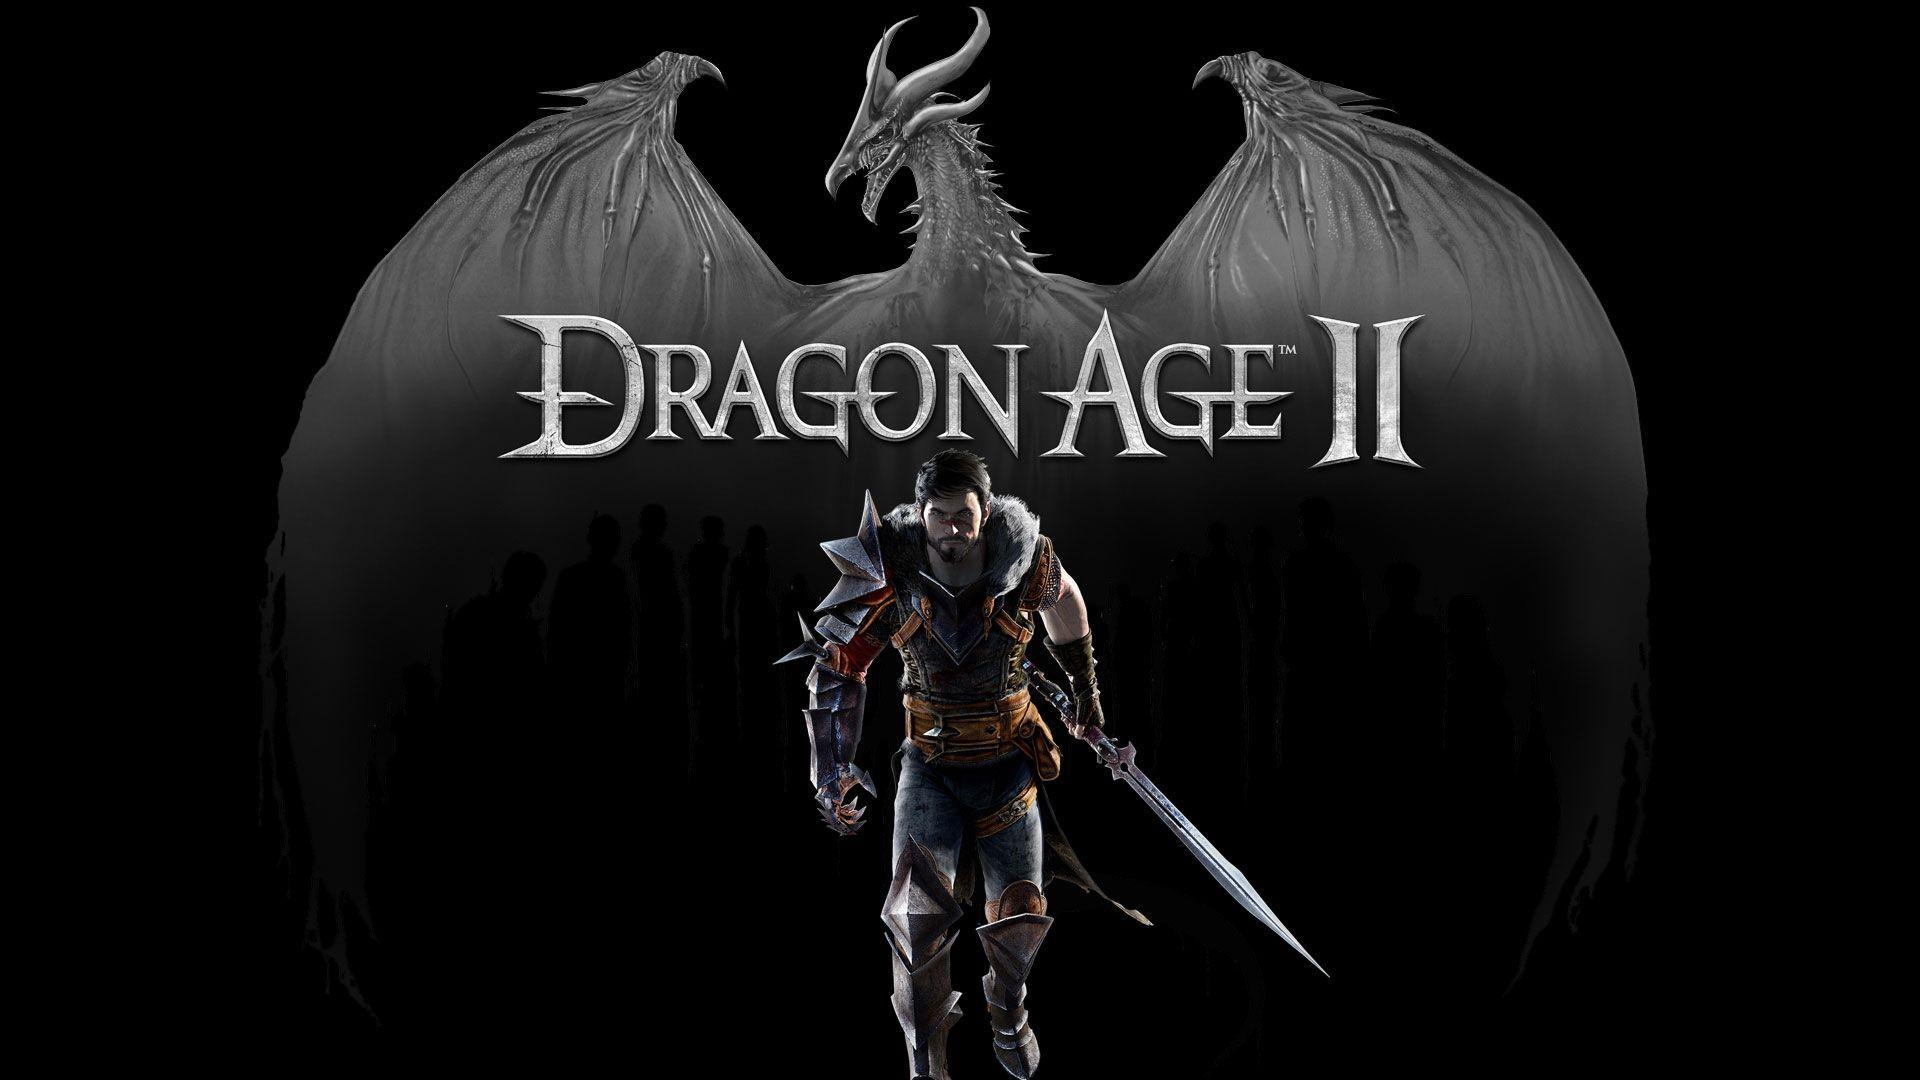 Badass Hd Wallpapers 1080p Dragon Age P Wallpaper Cave